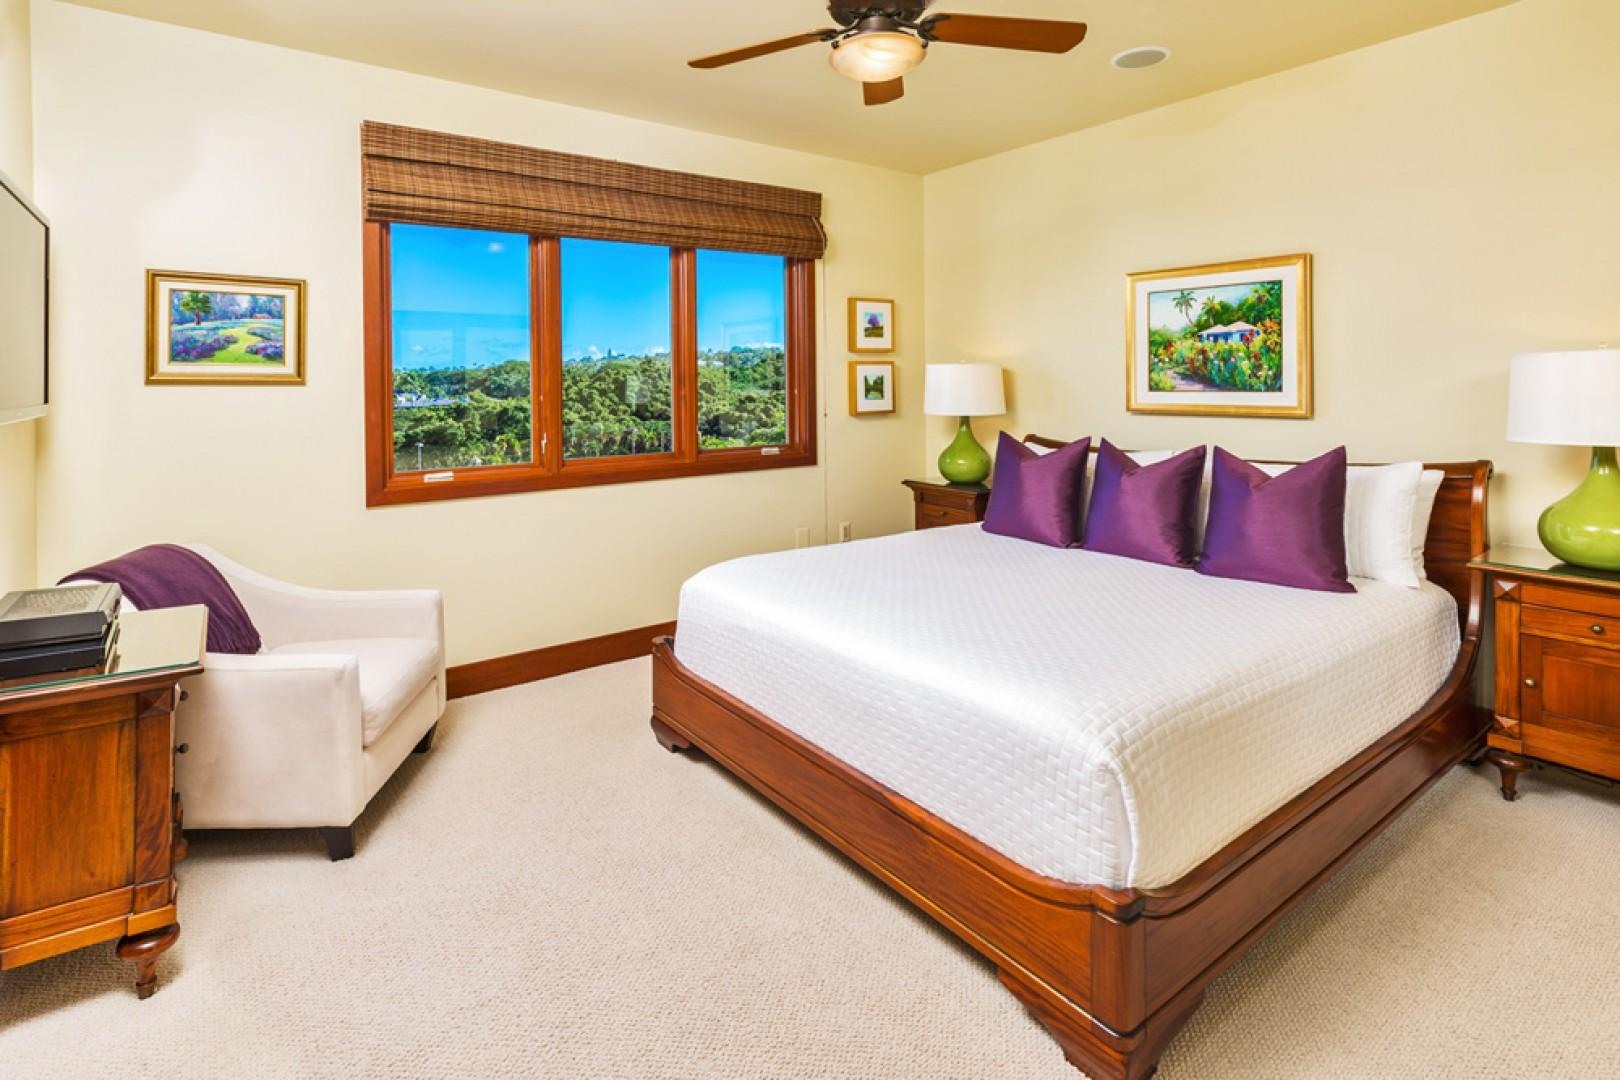 L509 Sandcastles Suite Second Master Bedroom with King Bed, Walk-In Closet and En-Suite Private Bath. Original Oil Paintings by George Allen and Jan Shaner - 2 of Maui's award-winning and celebrated artists.